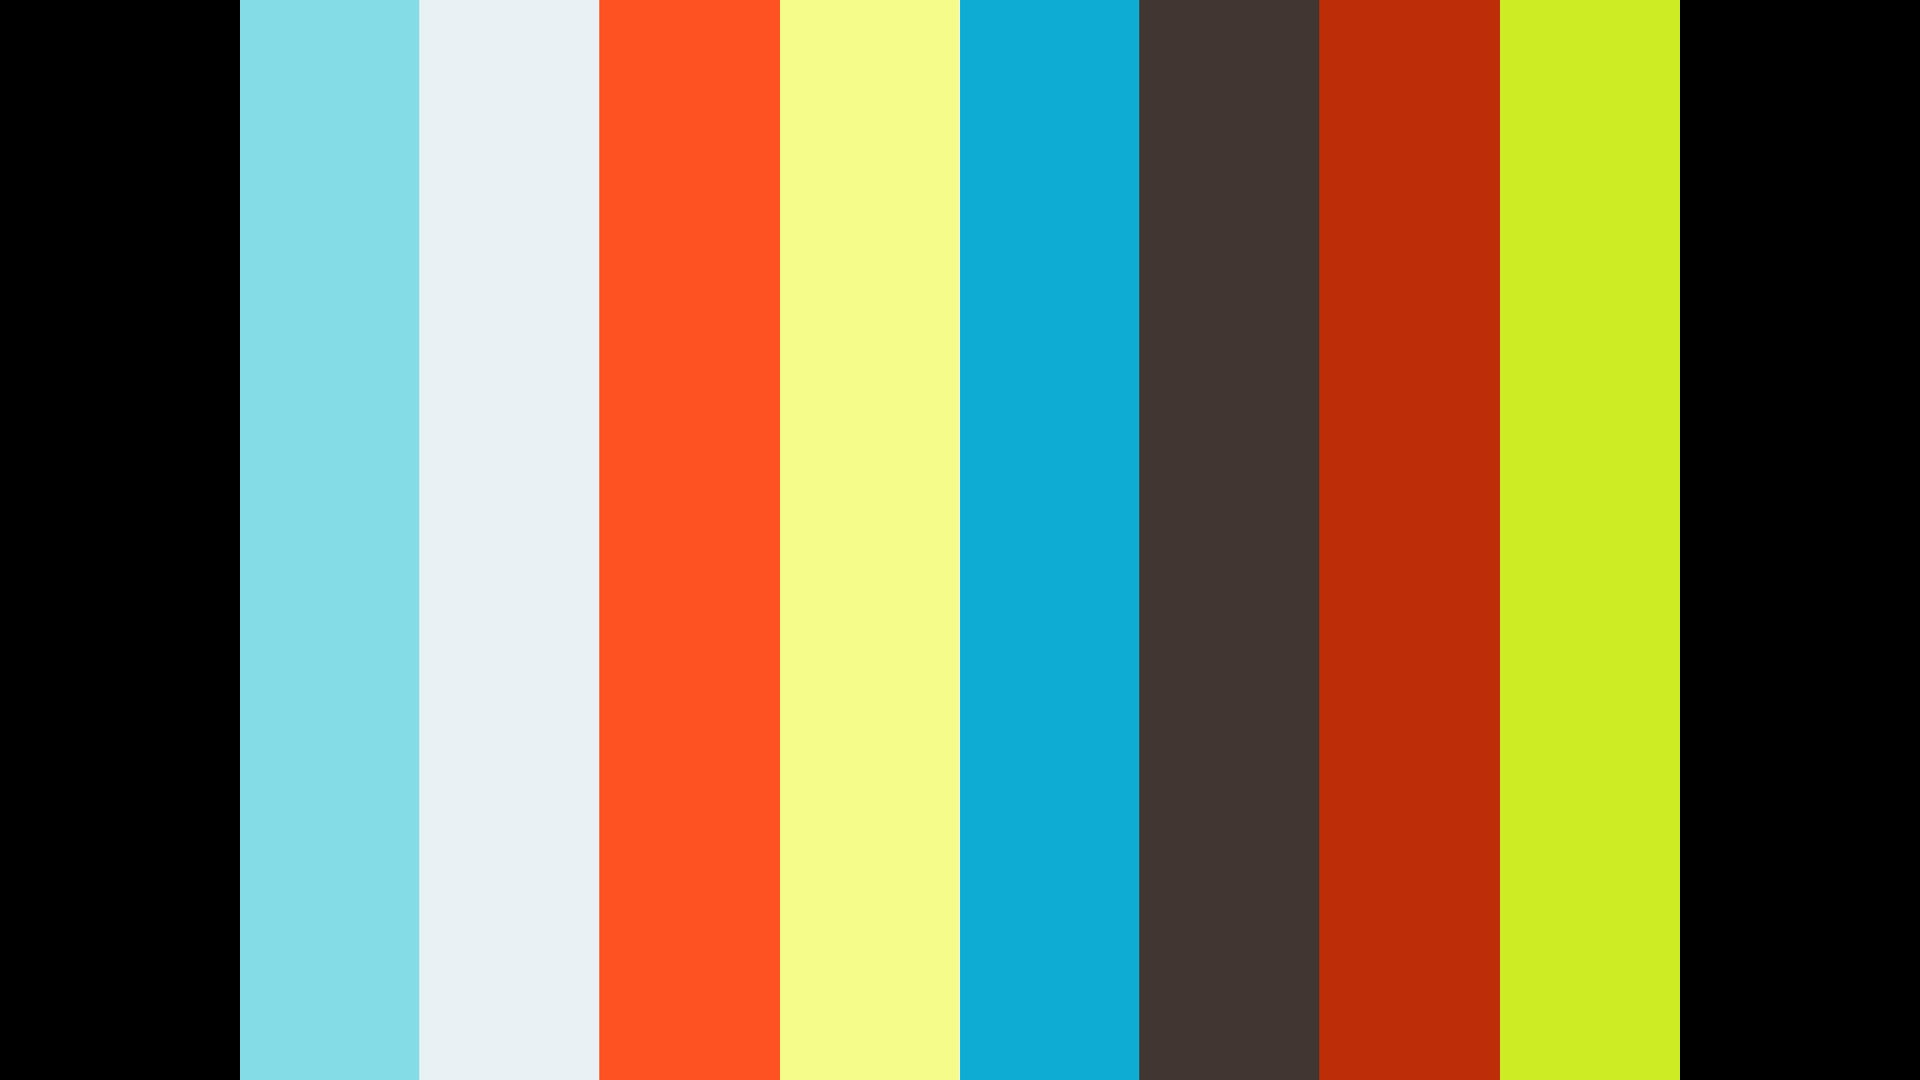 University of Redlands Graduation Ceremony Marketing Video